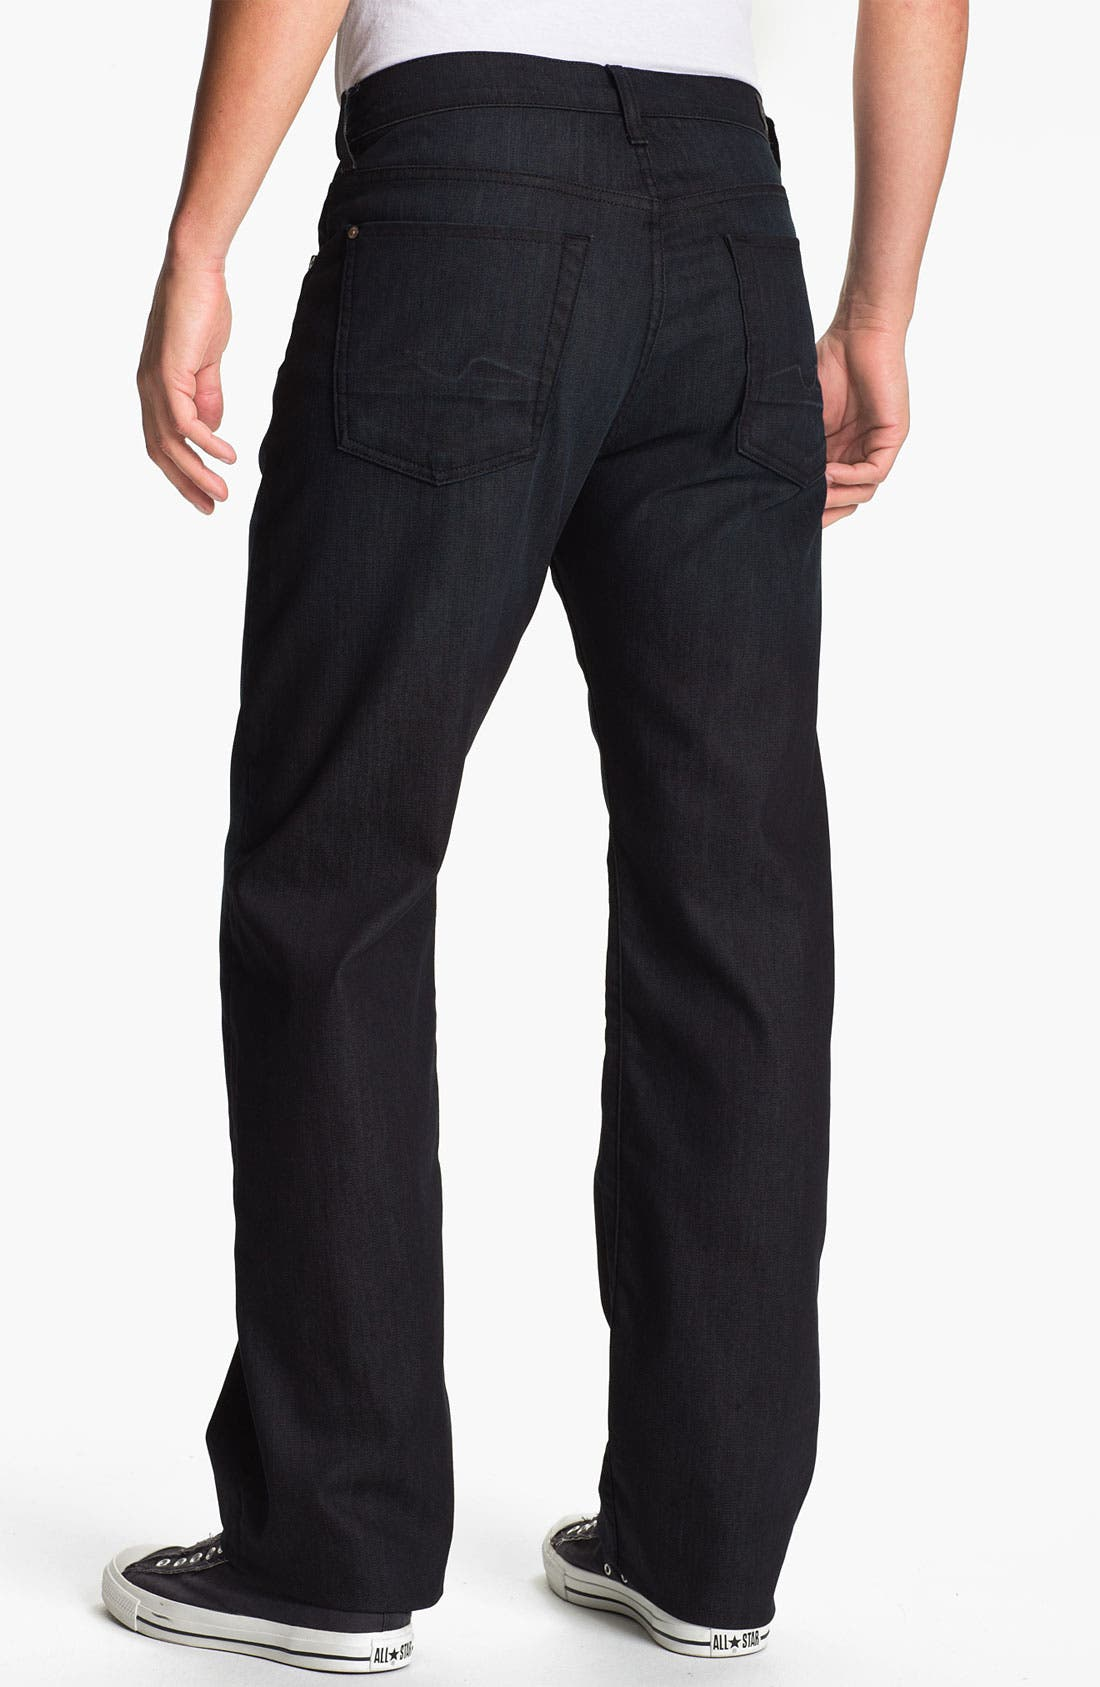 Alternate Image 1 Selected - 7 For All Mankind® 'Austyn' Relaxed Fit Jeans (Baileyville)